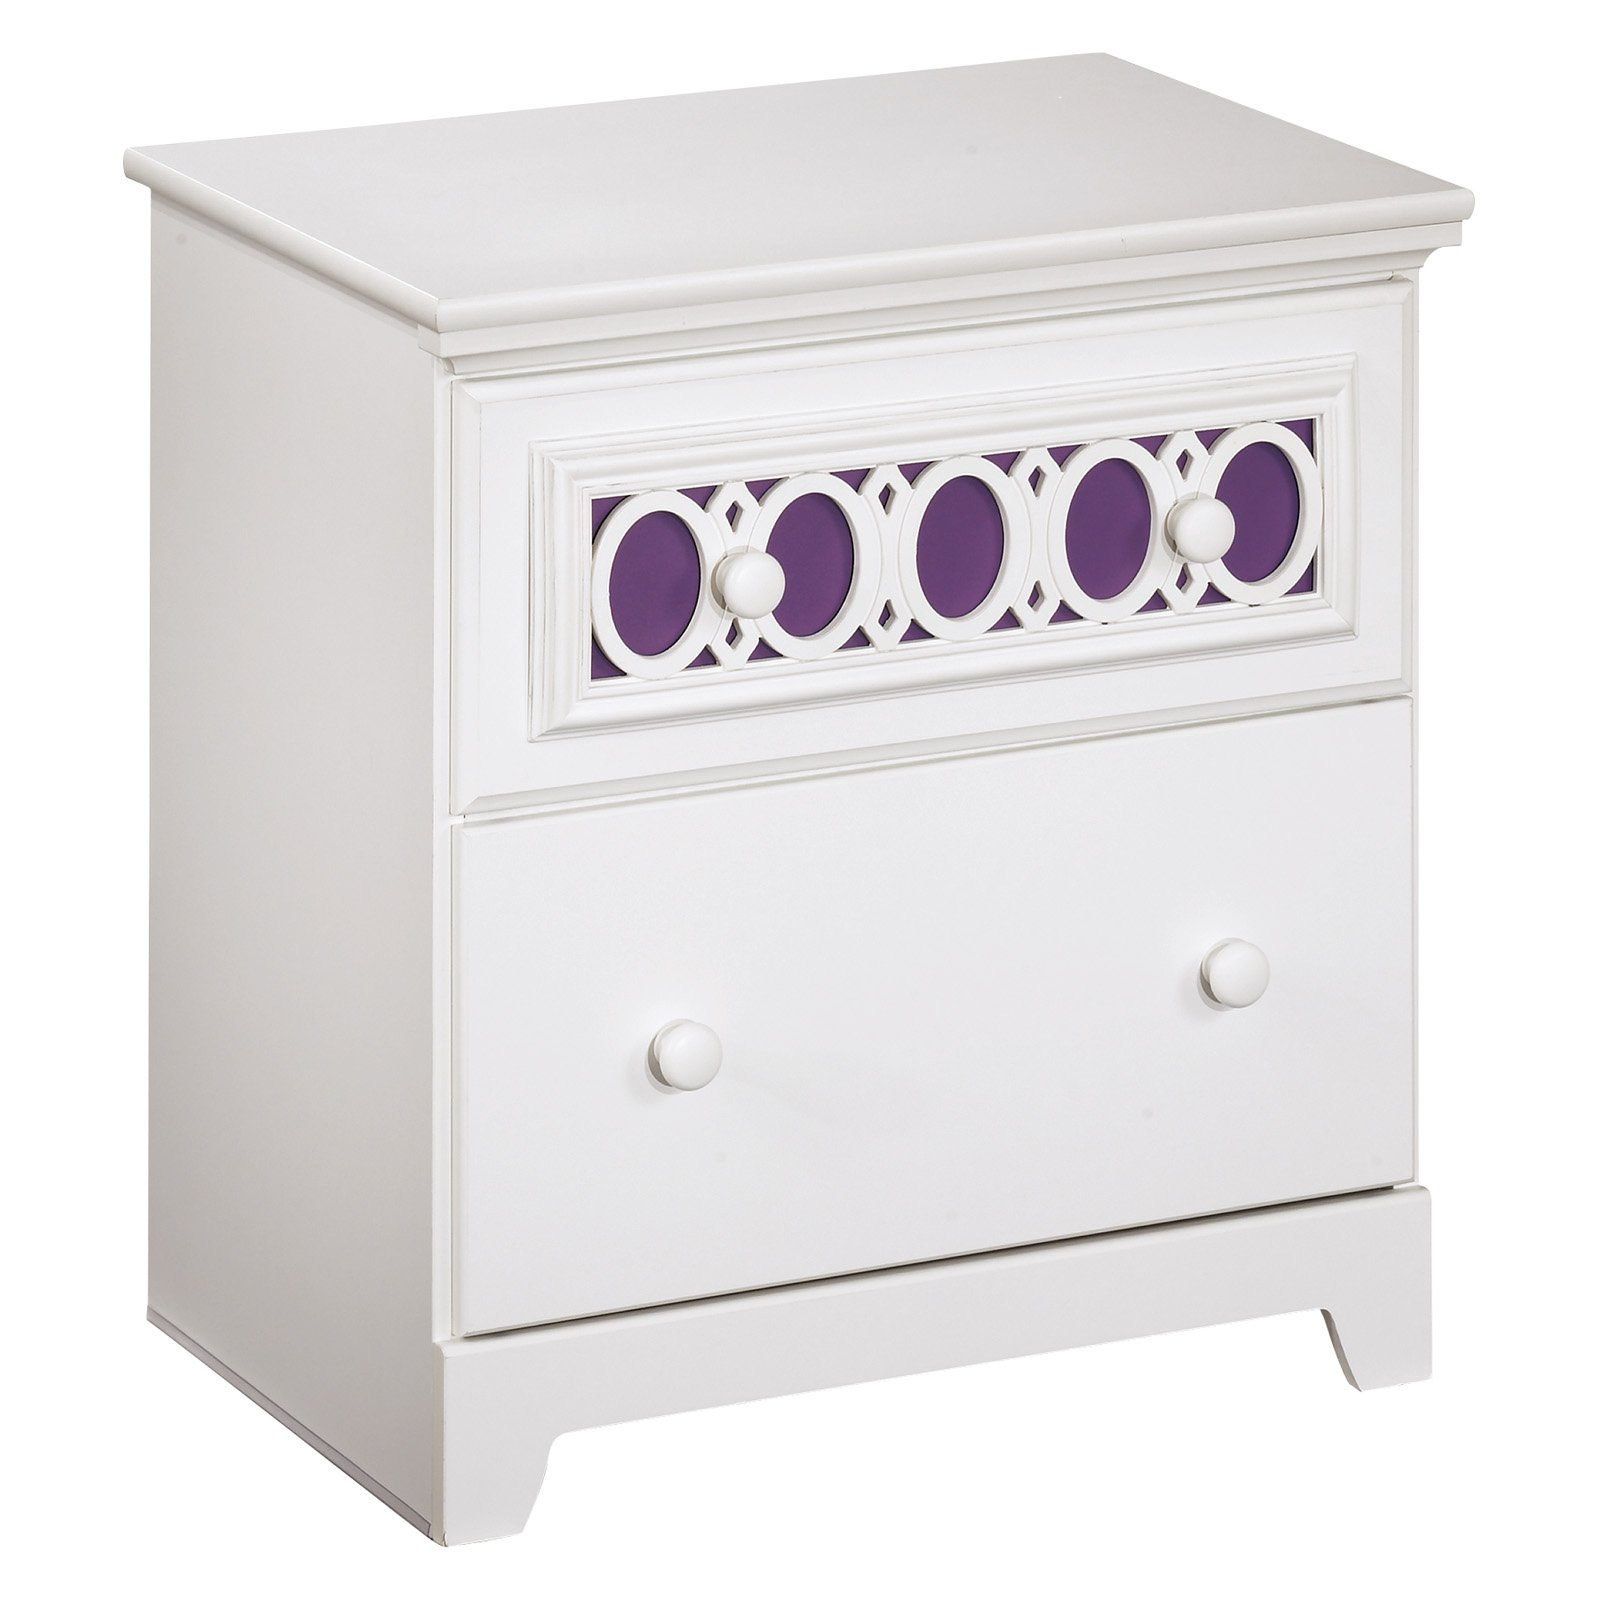 Signature Design by Ashley Zayley 2 Drawer Nightstand